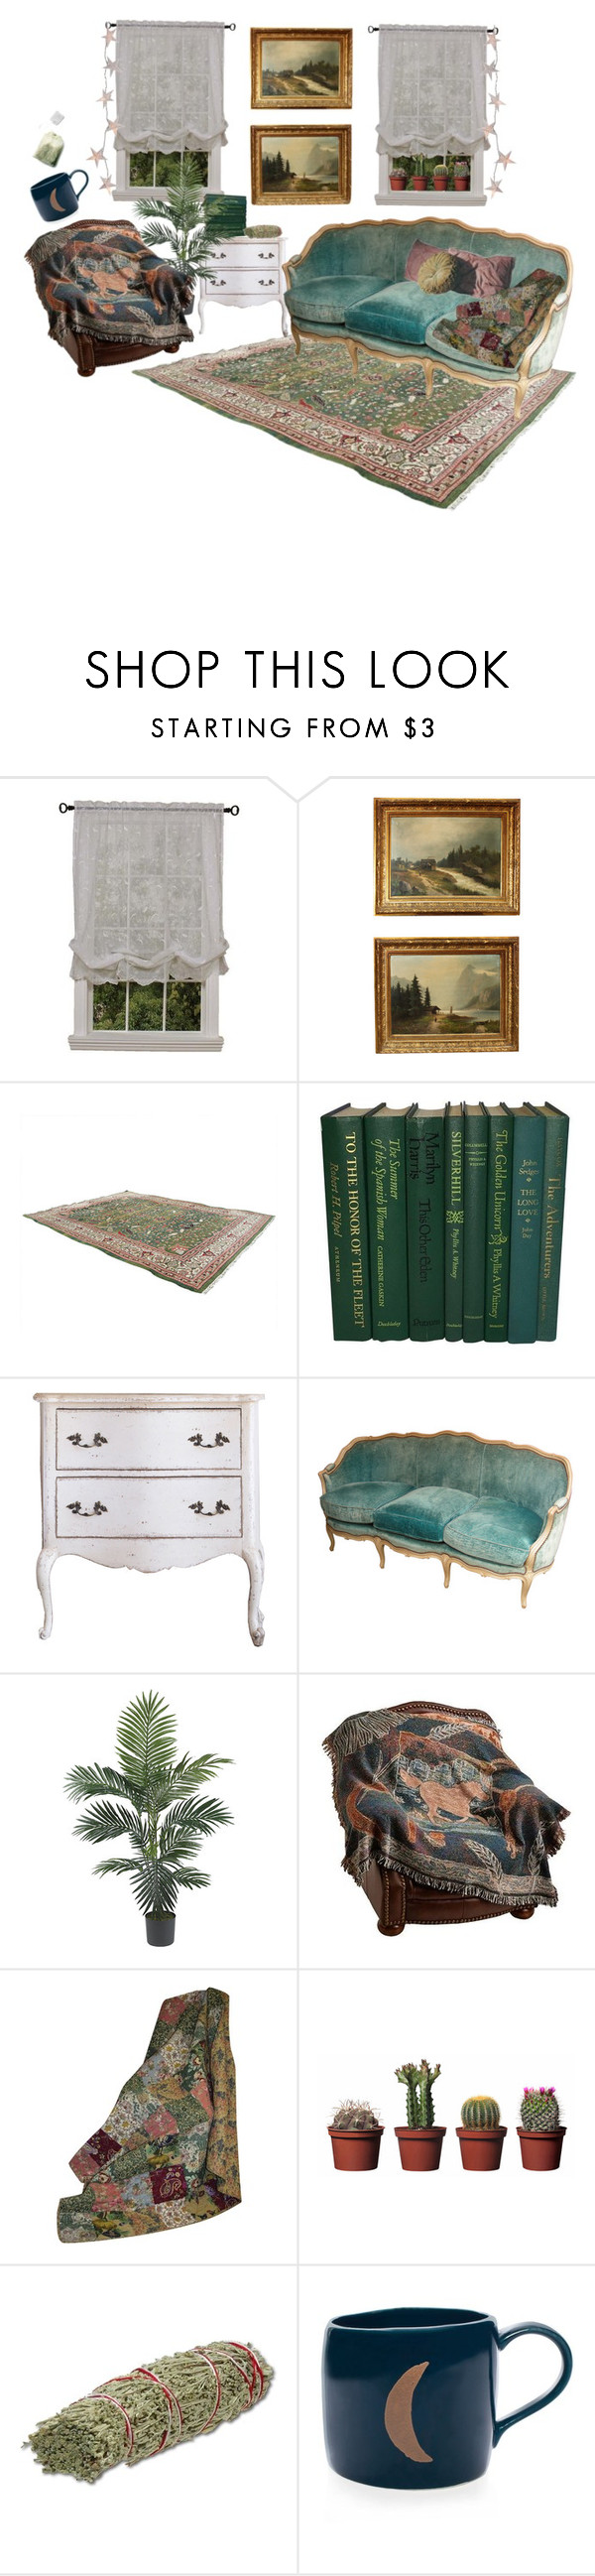 """the den"" by xievas ❤ liked on Polyvore featuring interior, interiors, interior design, home, home decor, interior decorating, Habitat, Nearly Natural, Greenland Home and Shabby Chic"